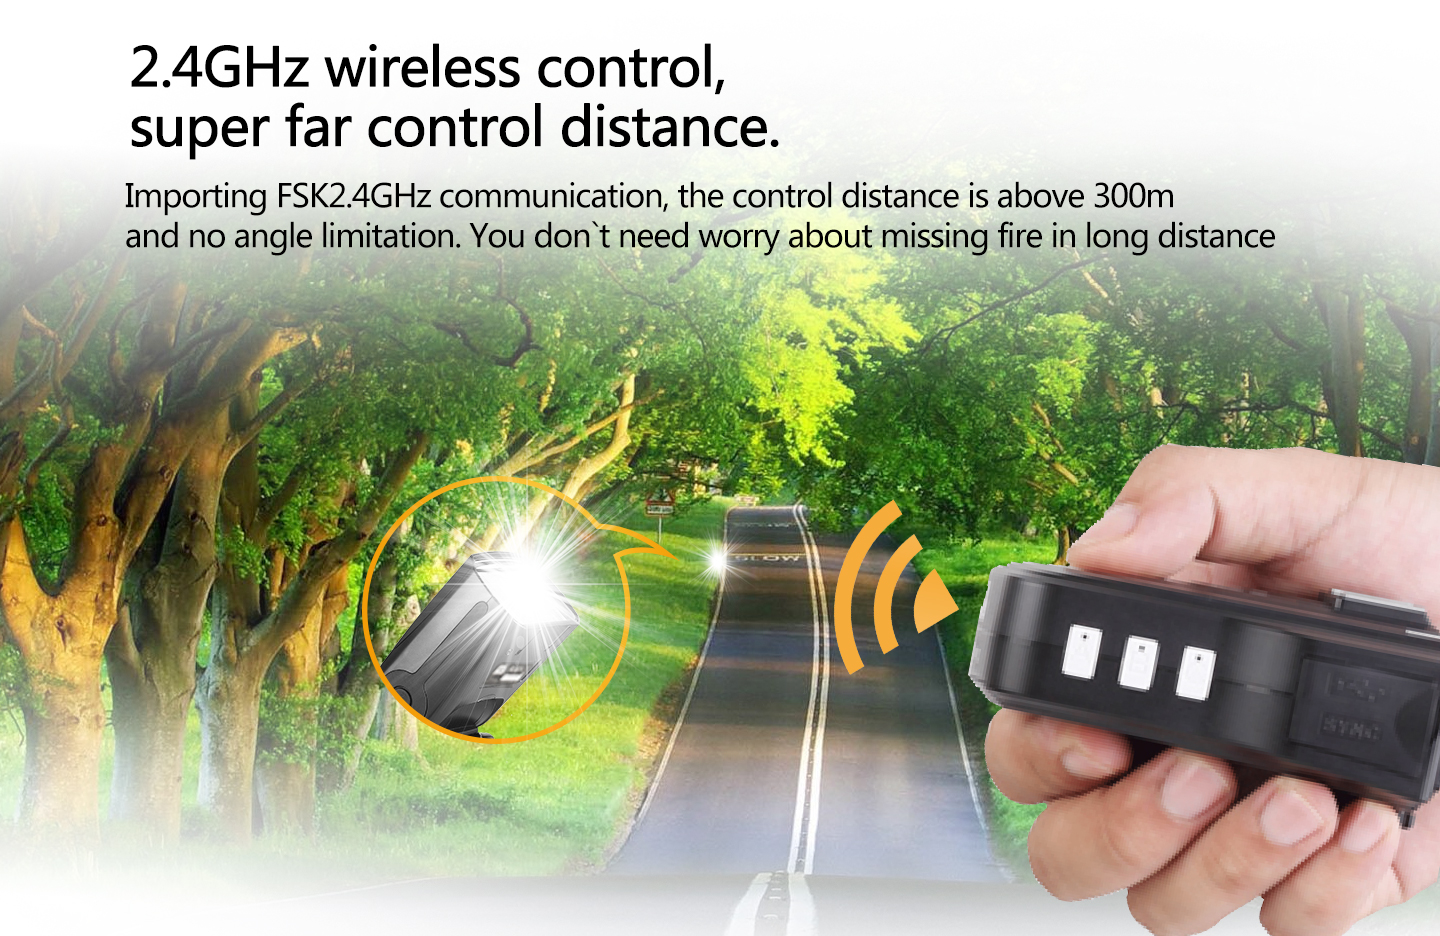 2.4GHz wireless control, super far control distance